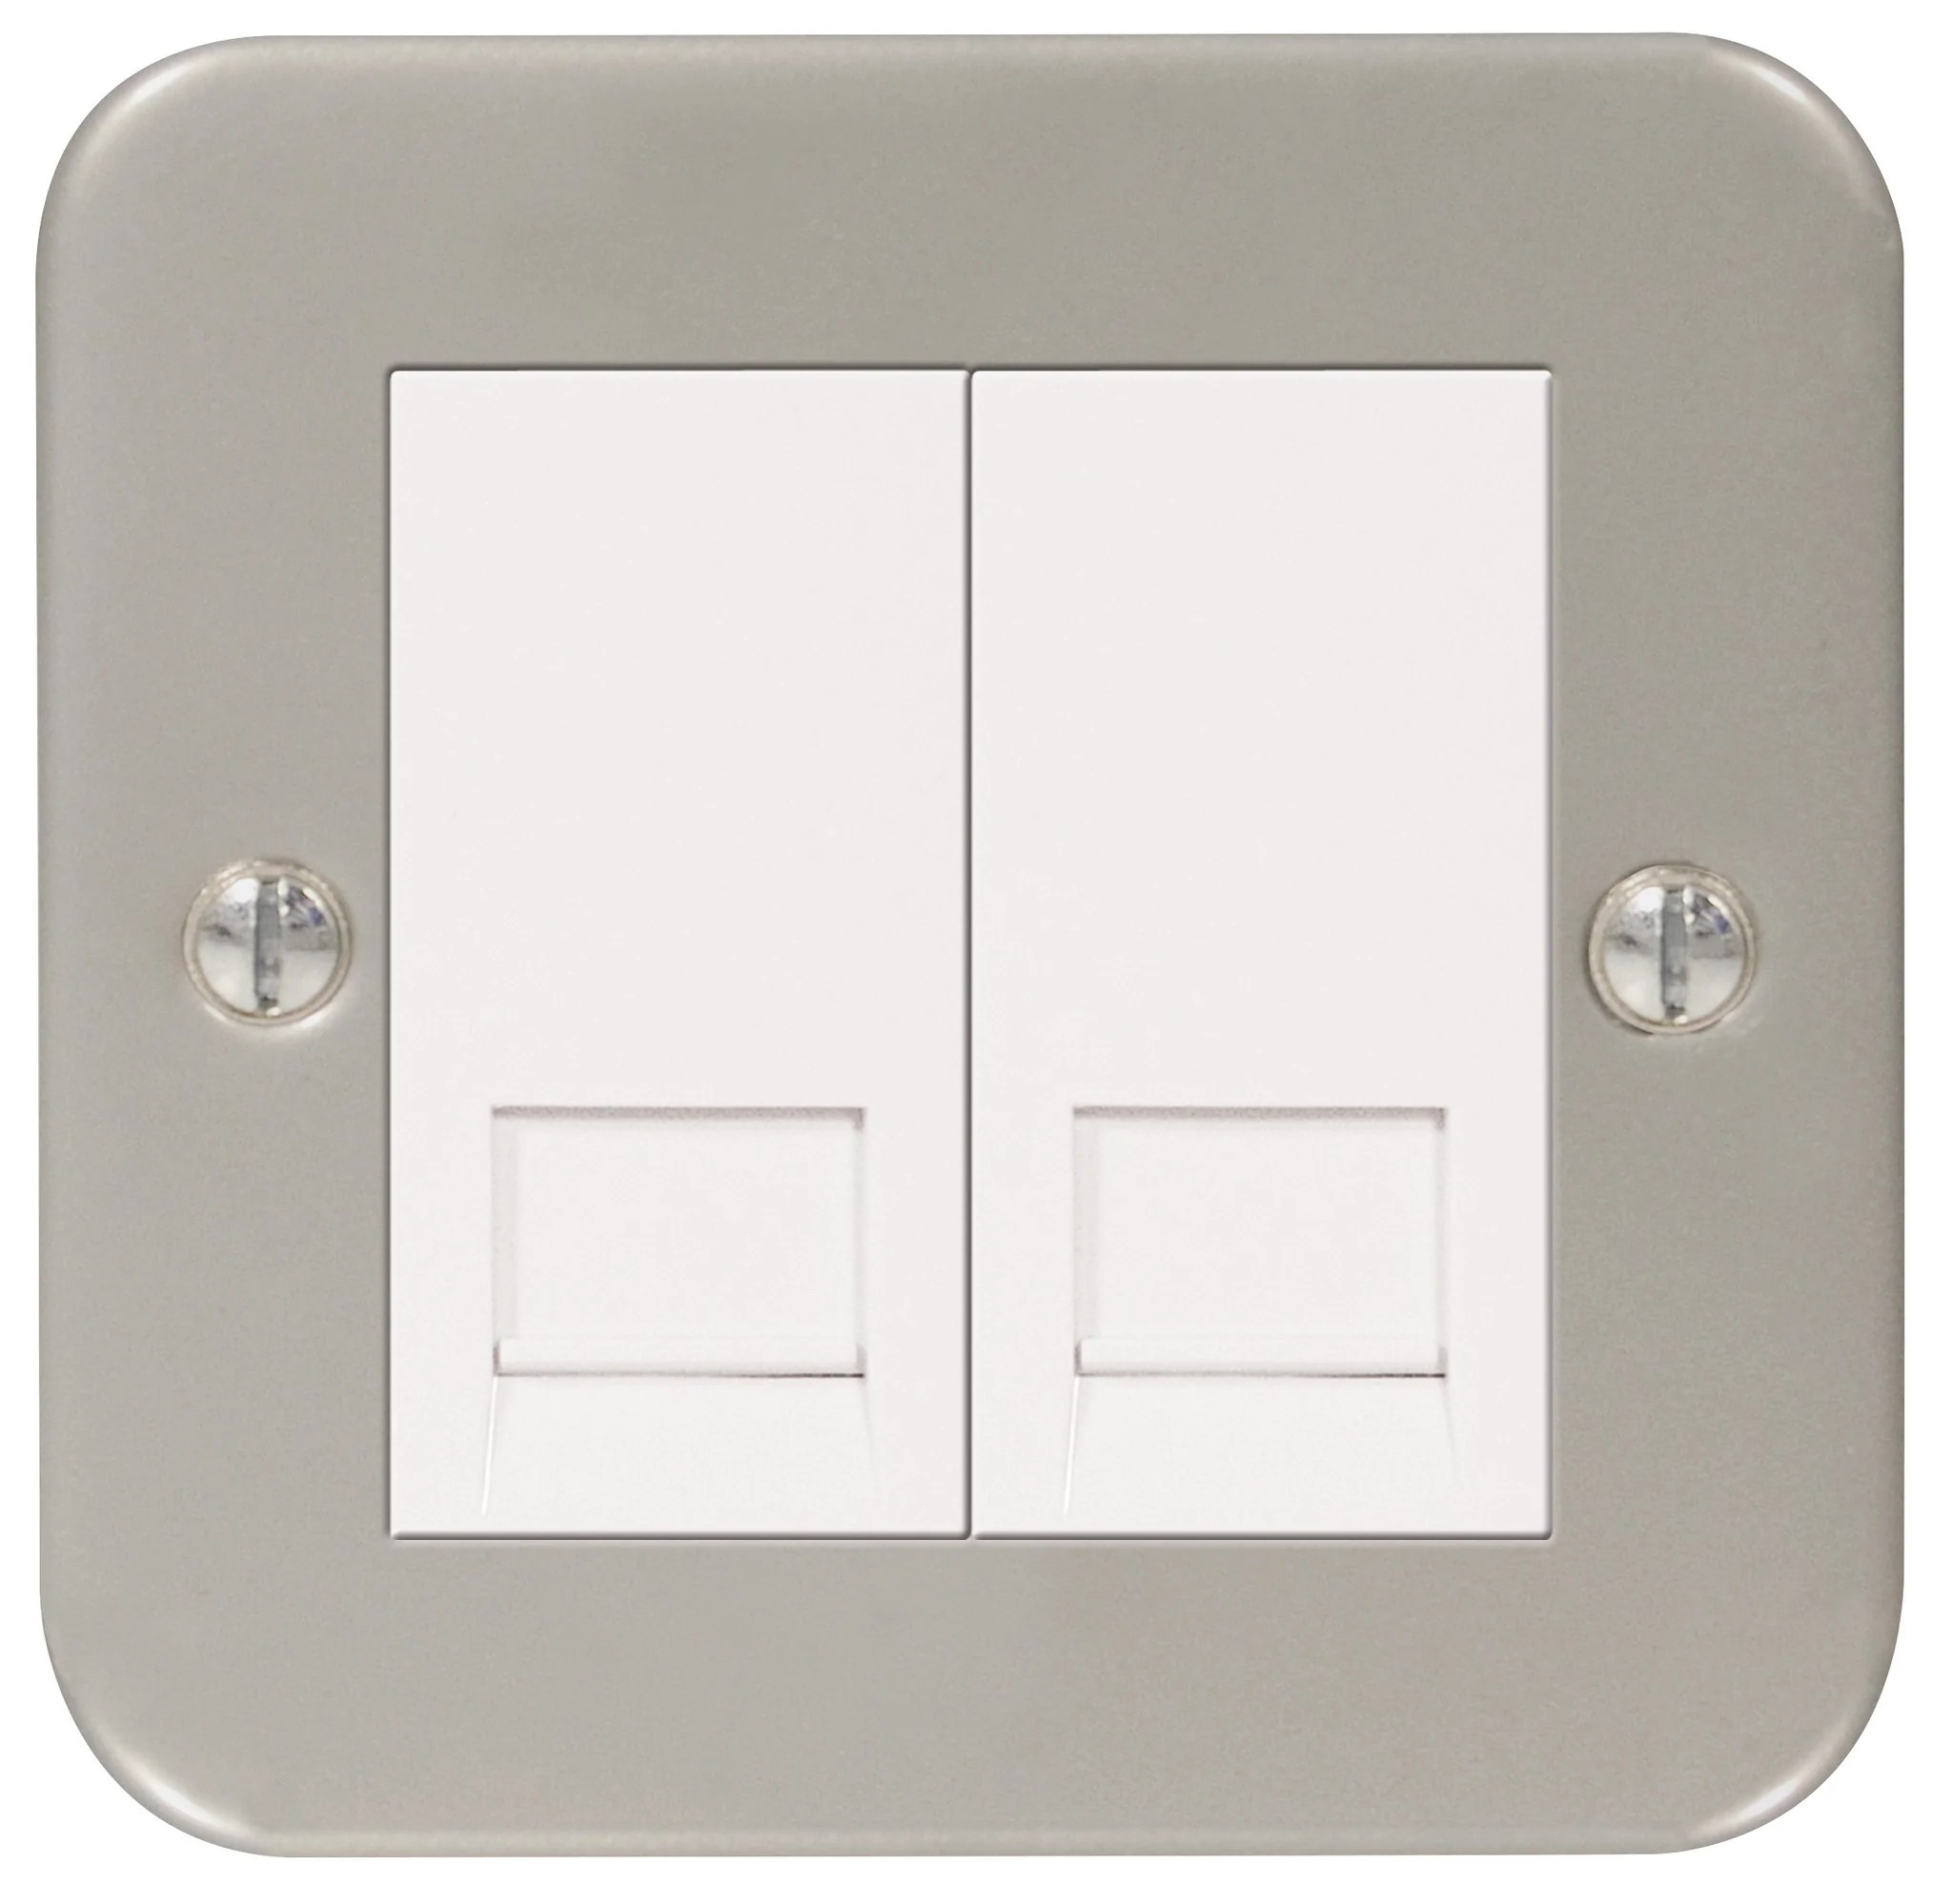 hight resolution of category switches sockets